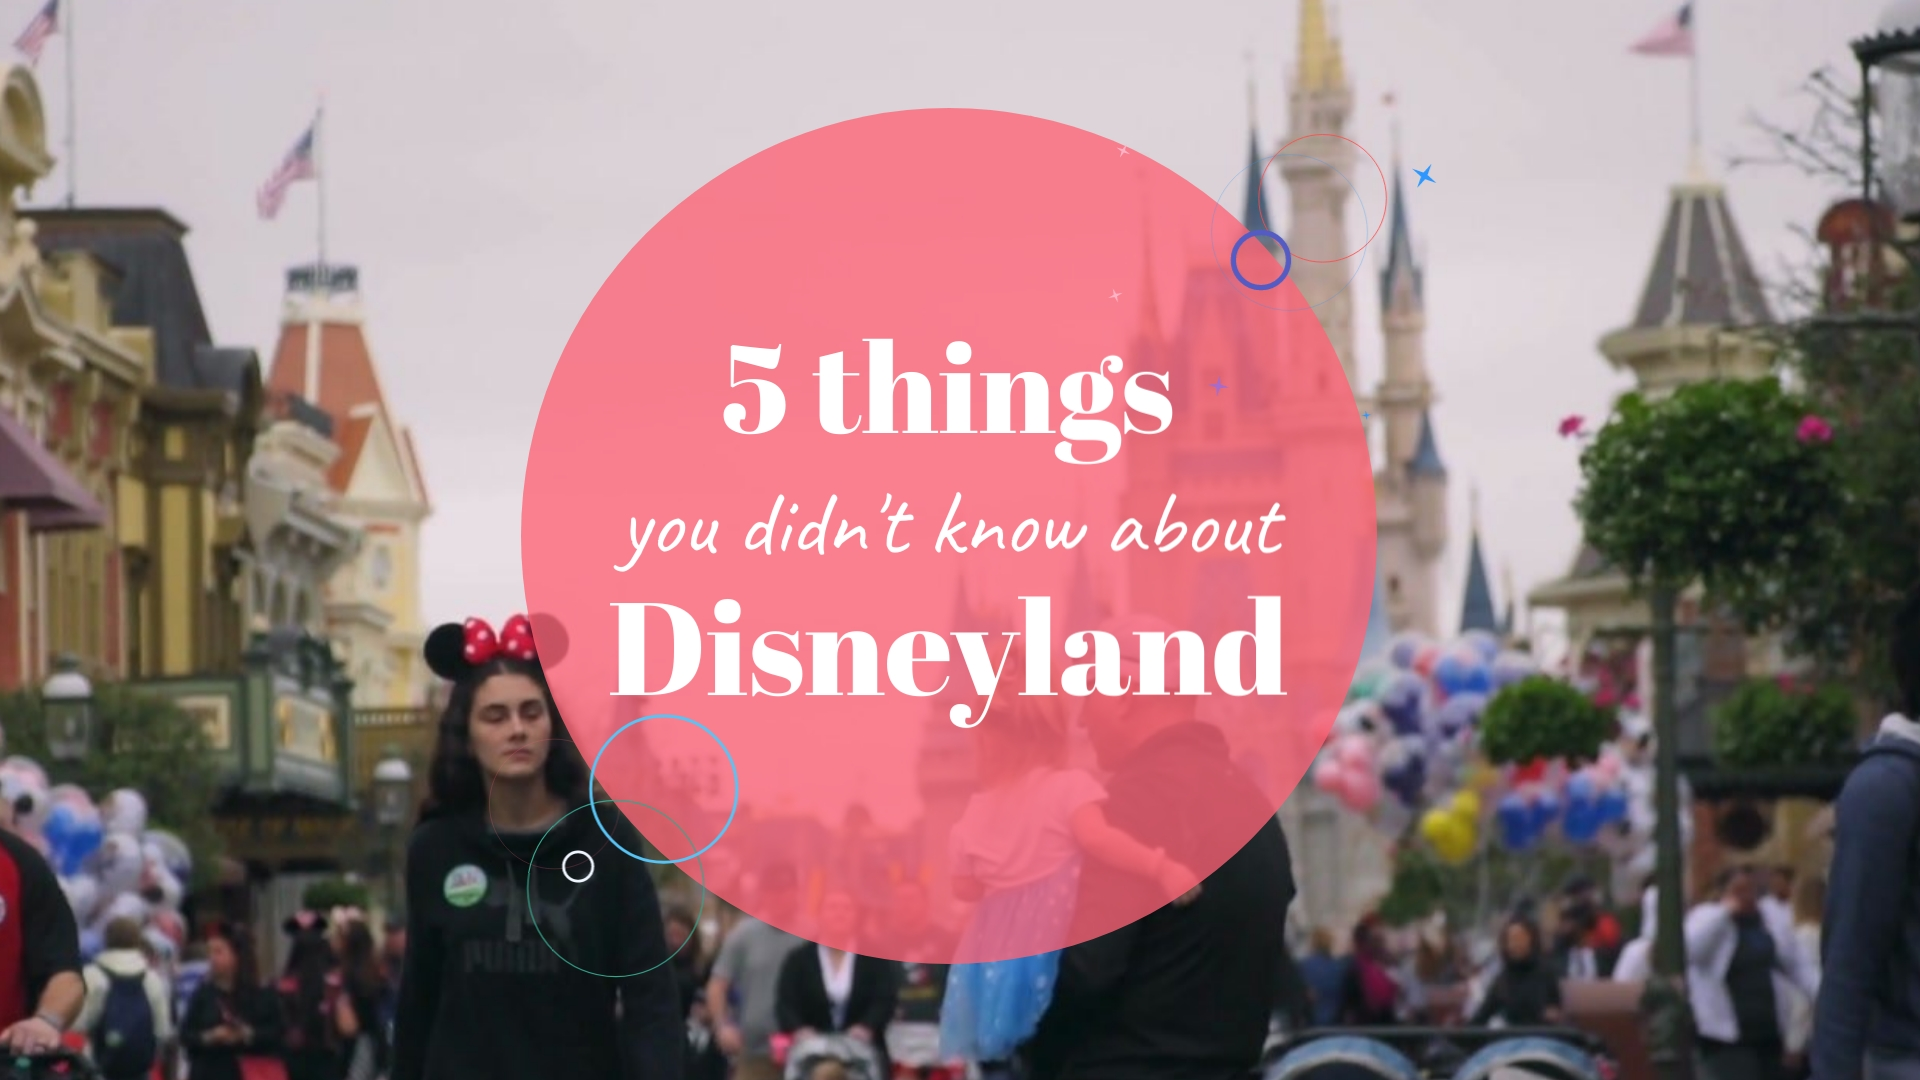 5 Things You Didn't Know About Disneyland - Listicle Video Template